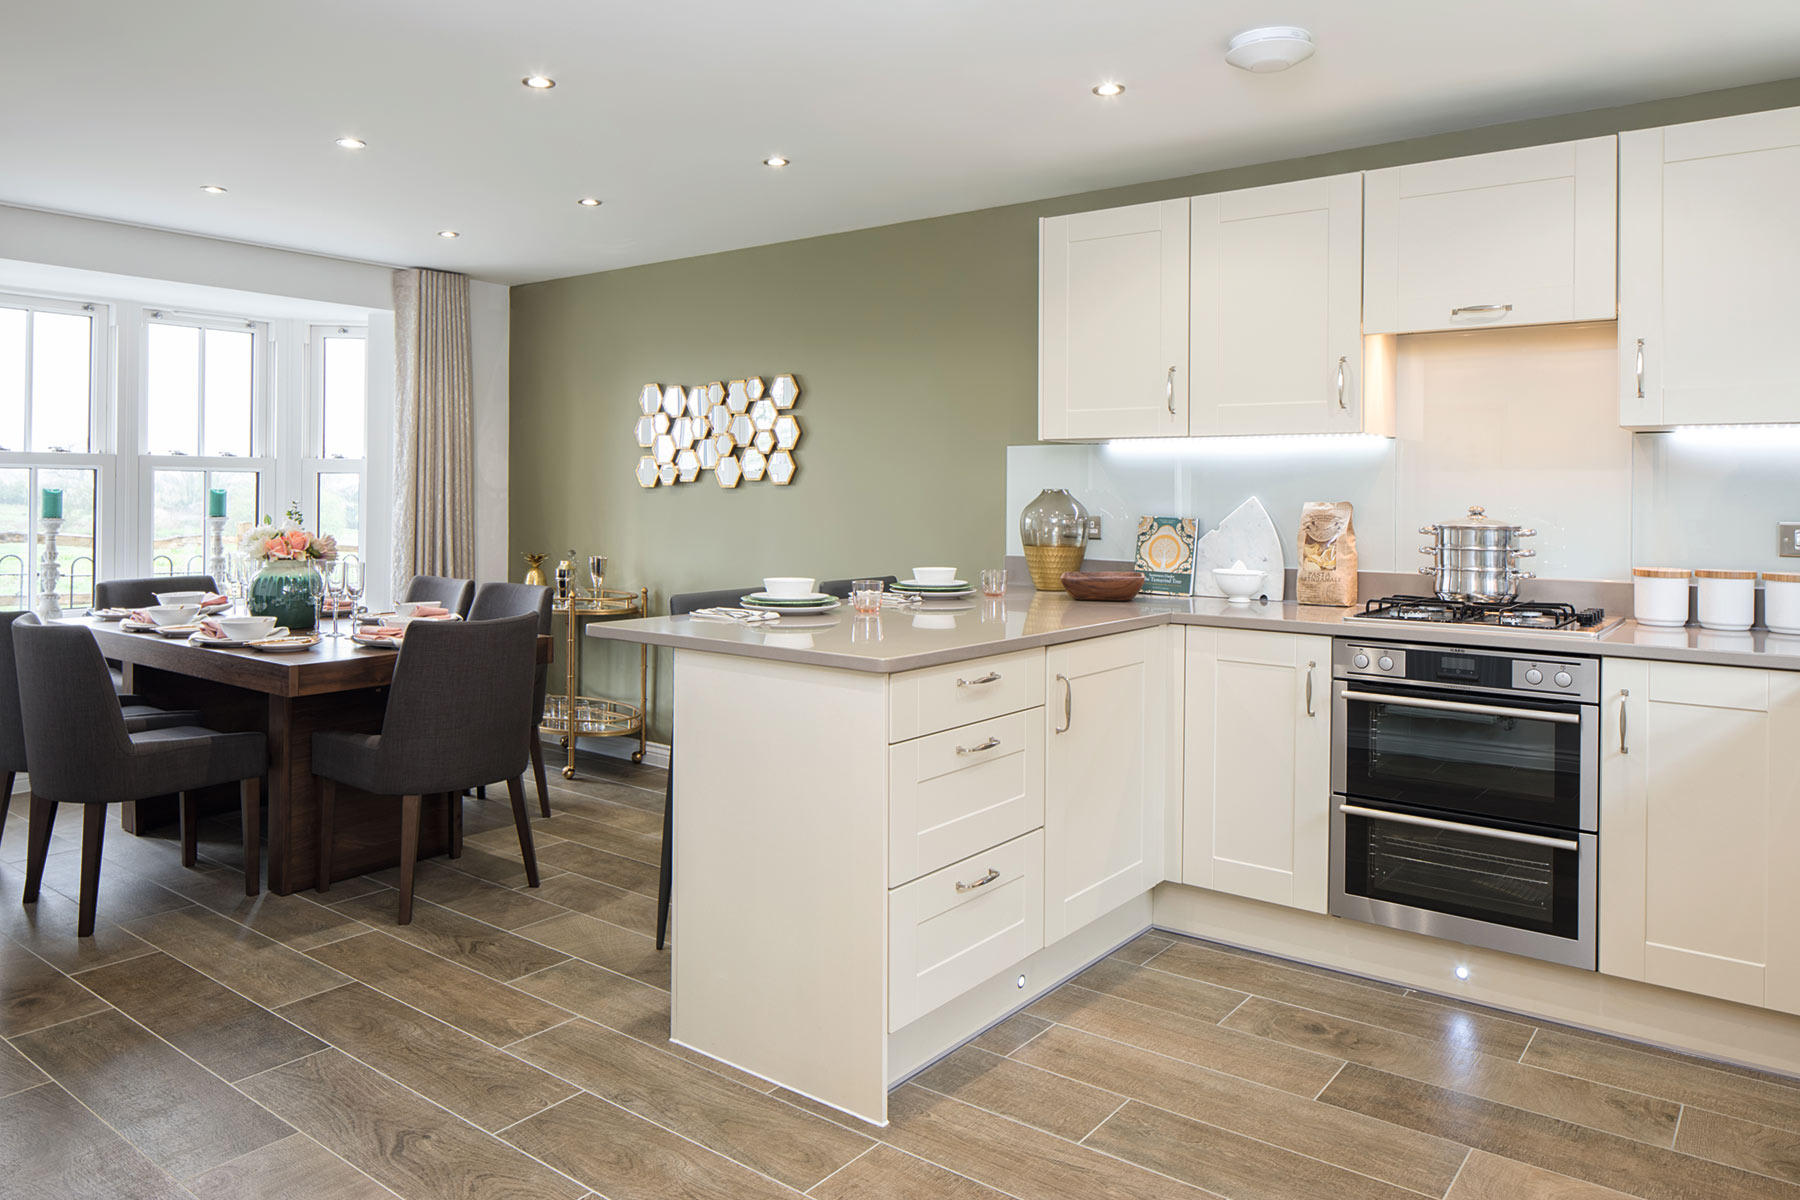 TW Exeter - Chy An Dowr - Eskdale example kitchen